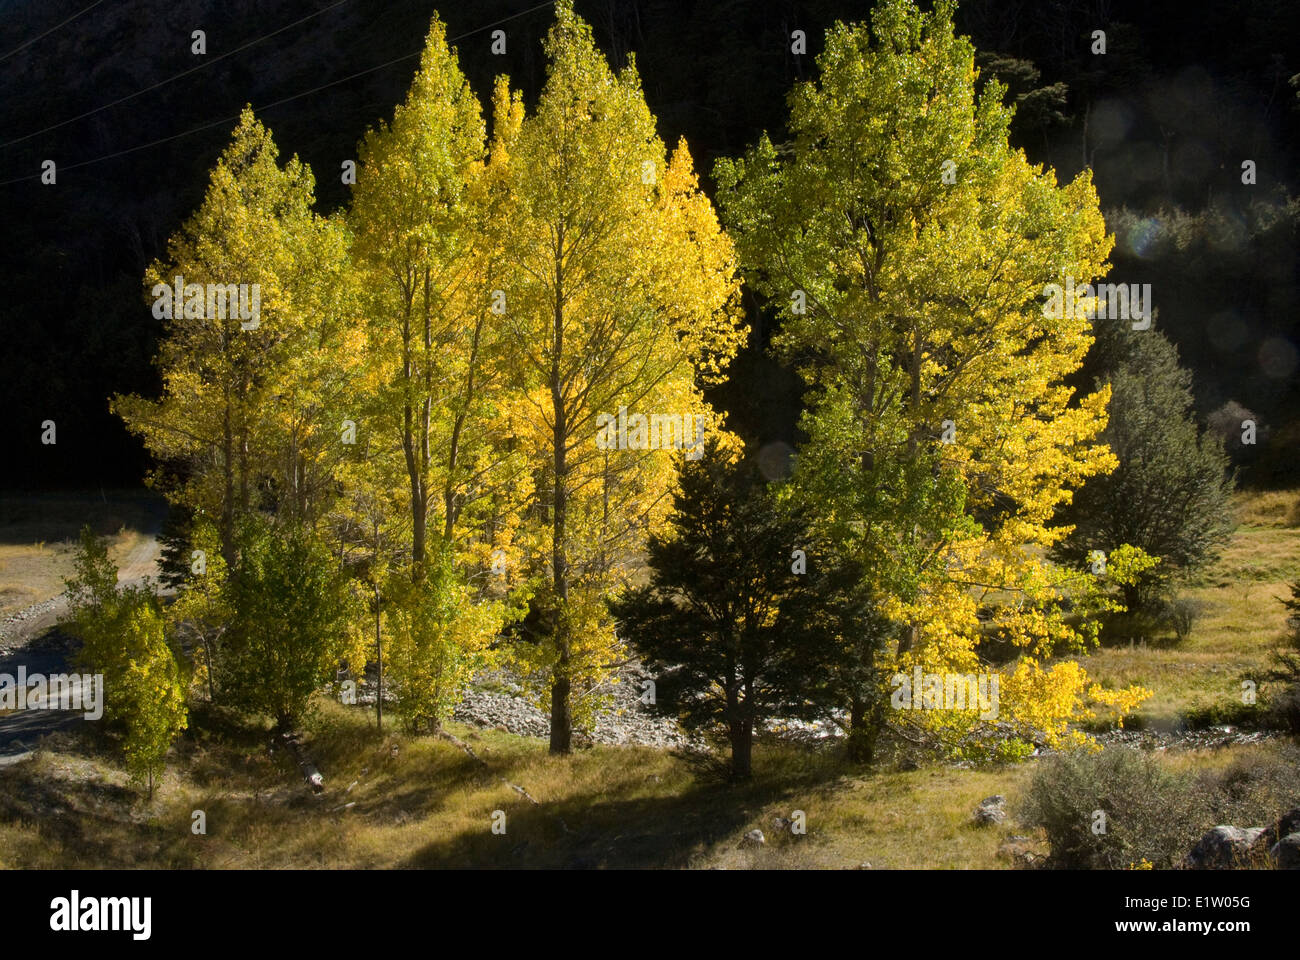 Poplar trees in autumn, Rainbow Station, Nelson, South Island, New Zealand - Stock Image